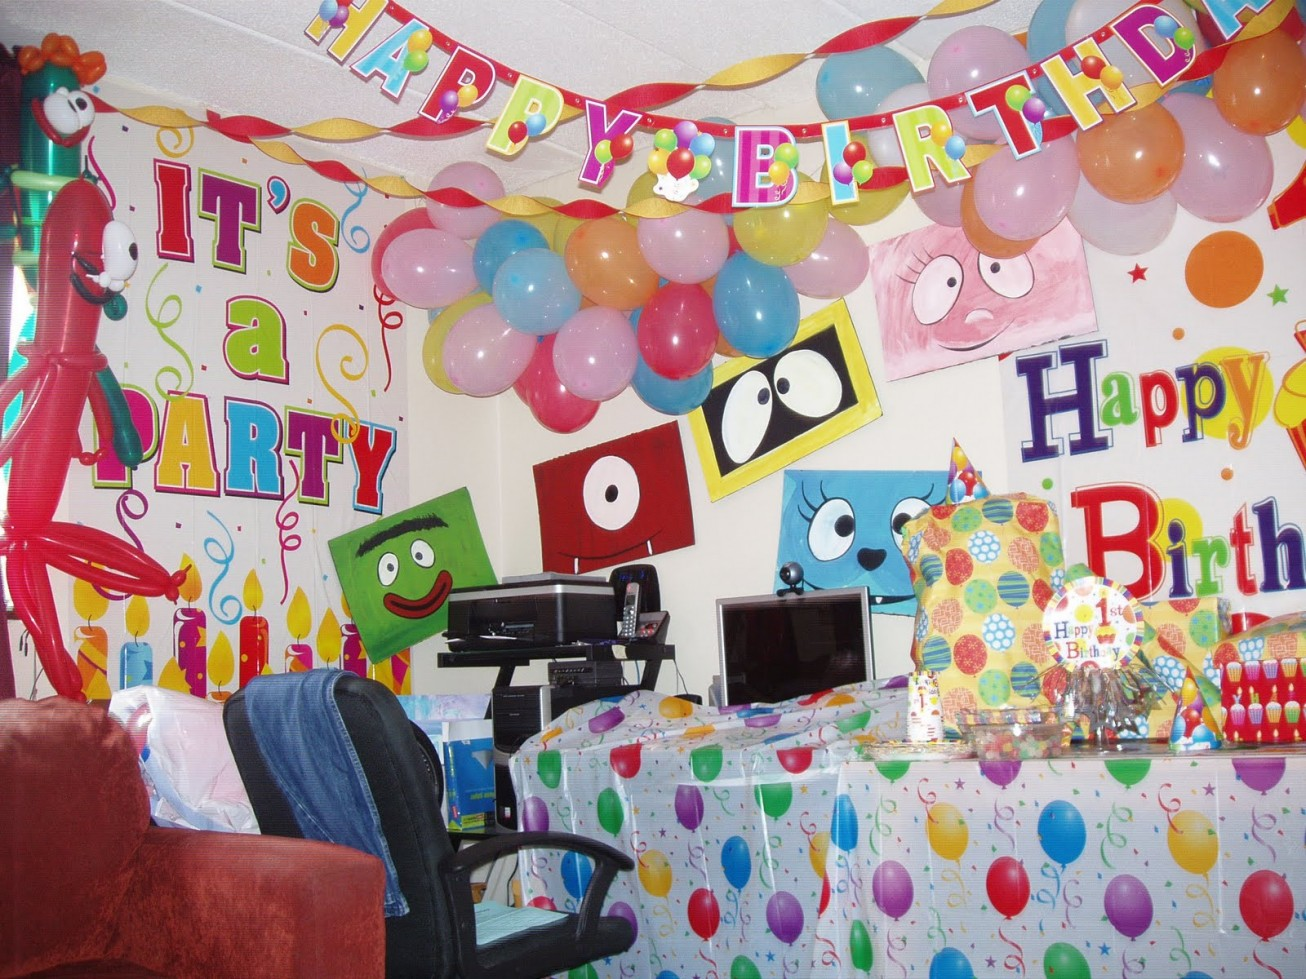 Birthday room decoration ideas 2016-2017  Fashion Trends 2016-2017